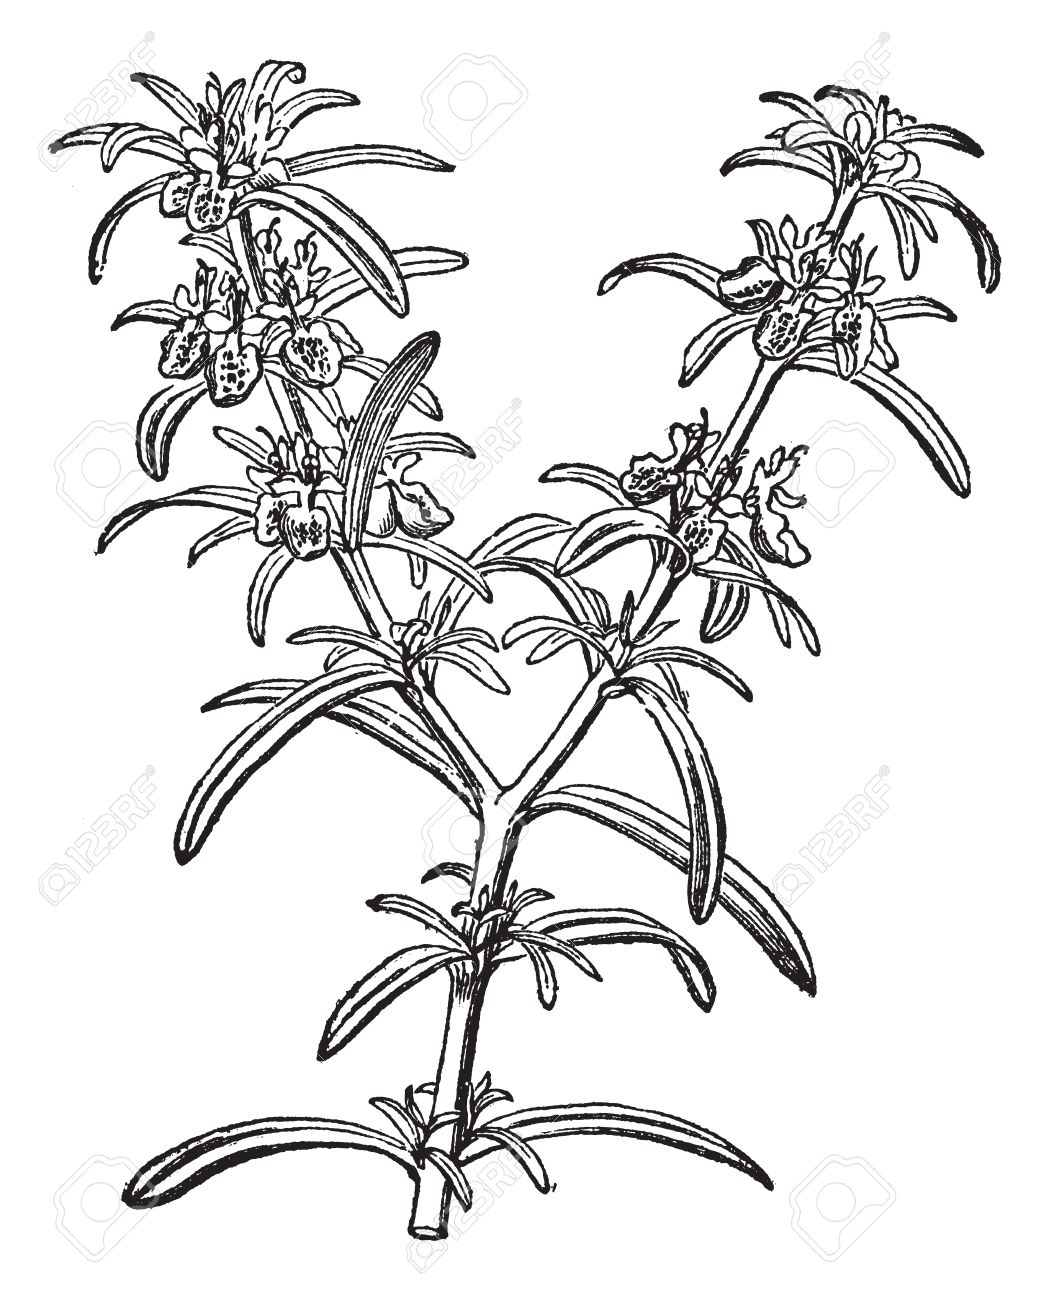 Rosemary Or Rosmarinus Officinalis, Vintage Engraving. Old.